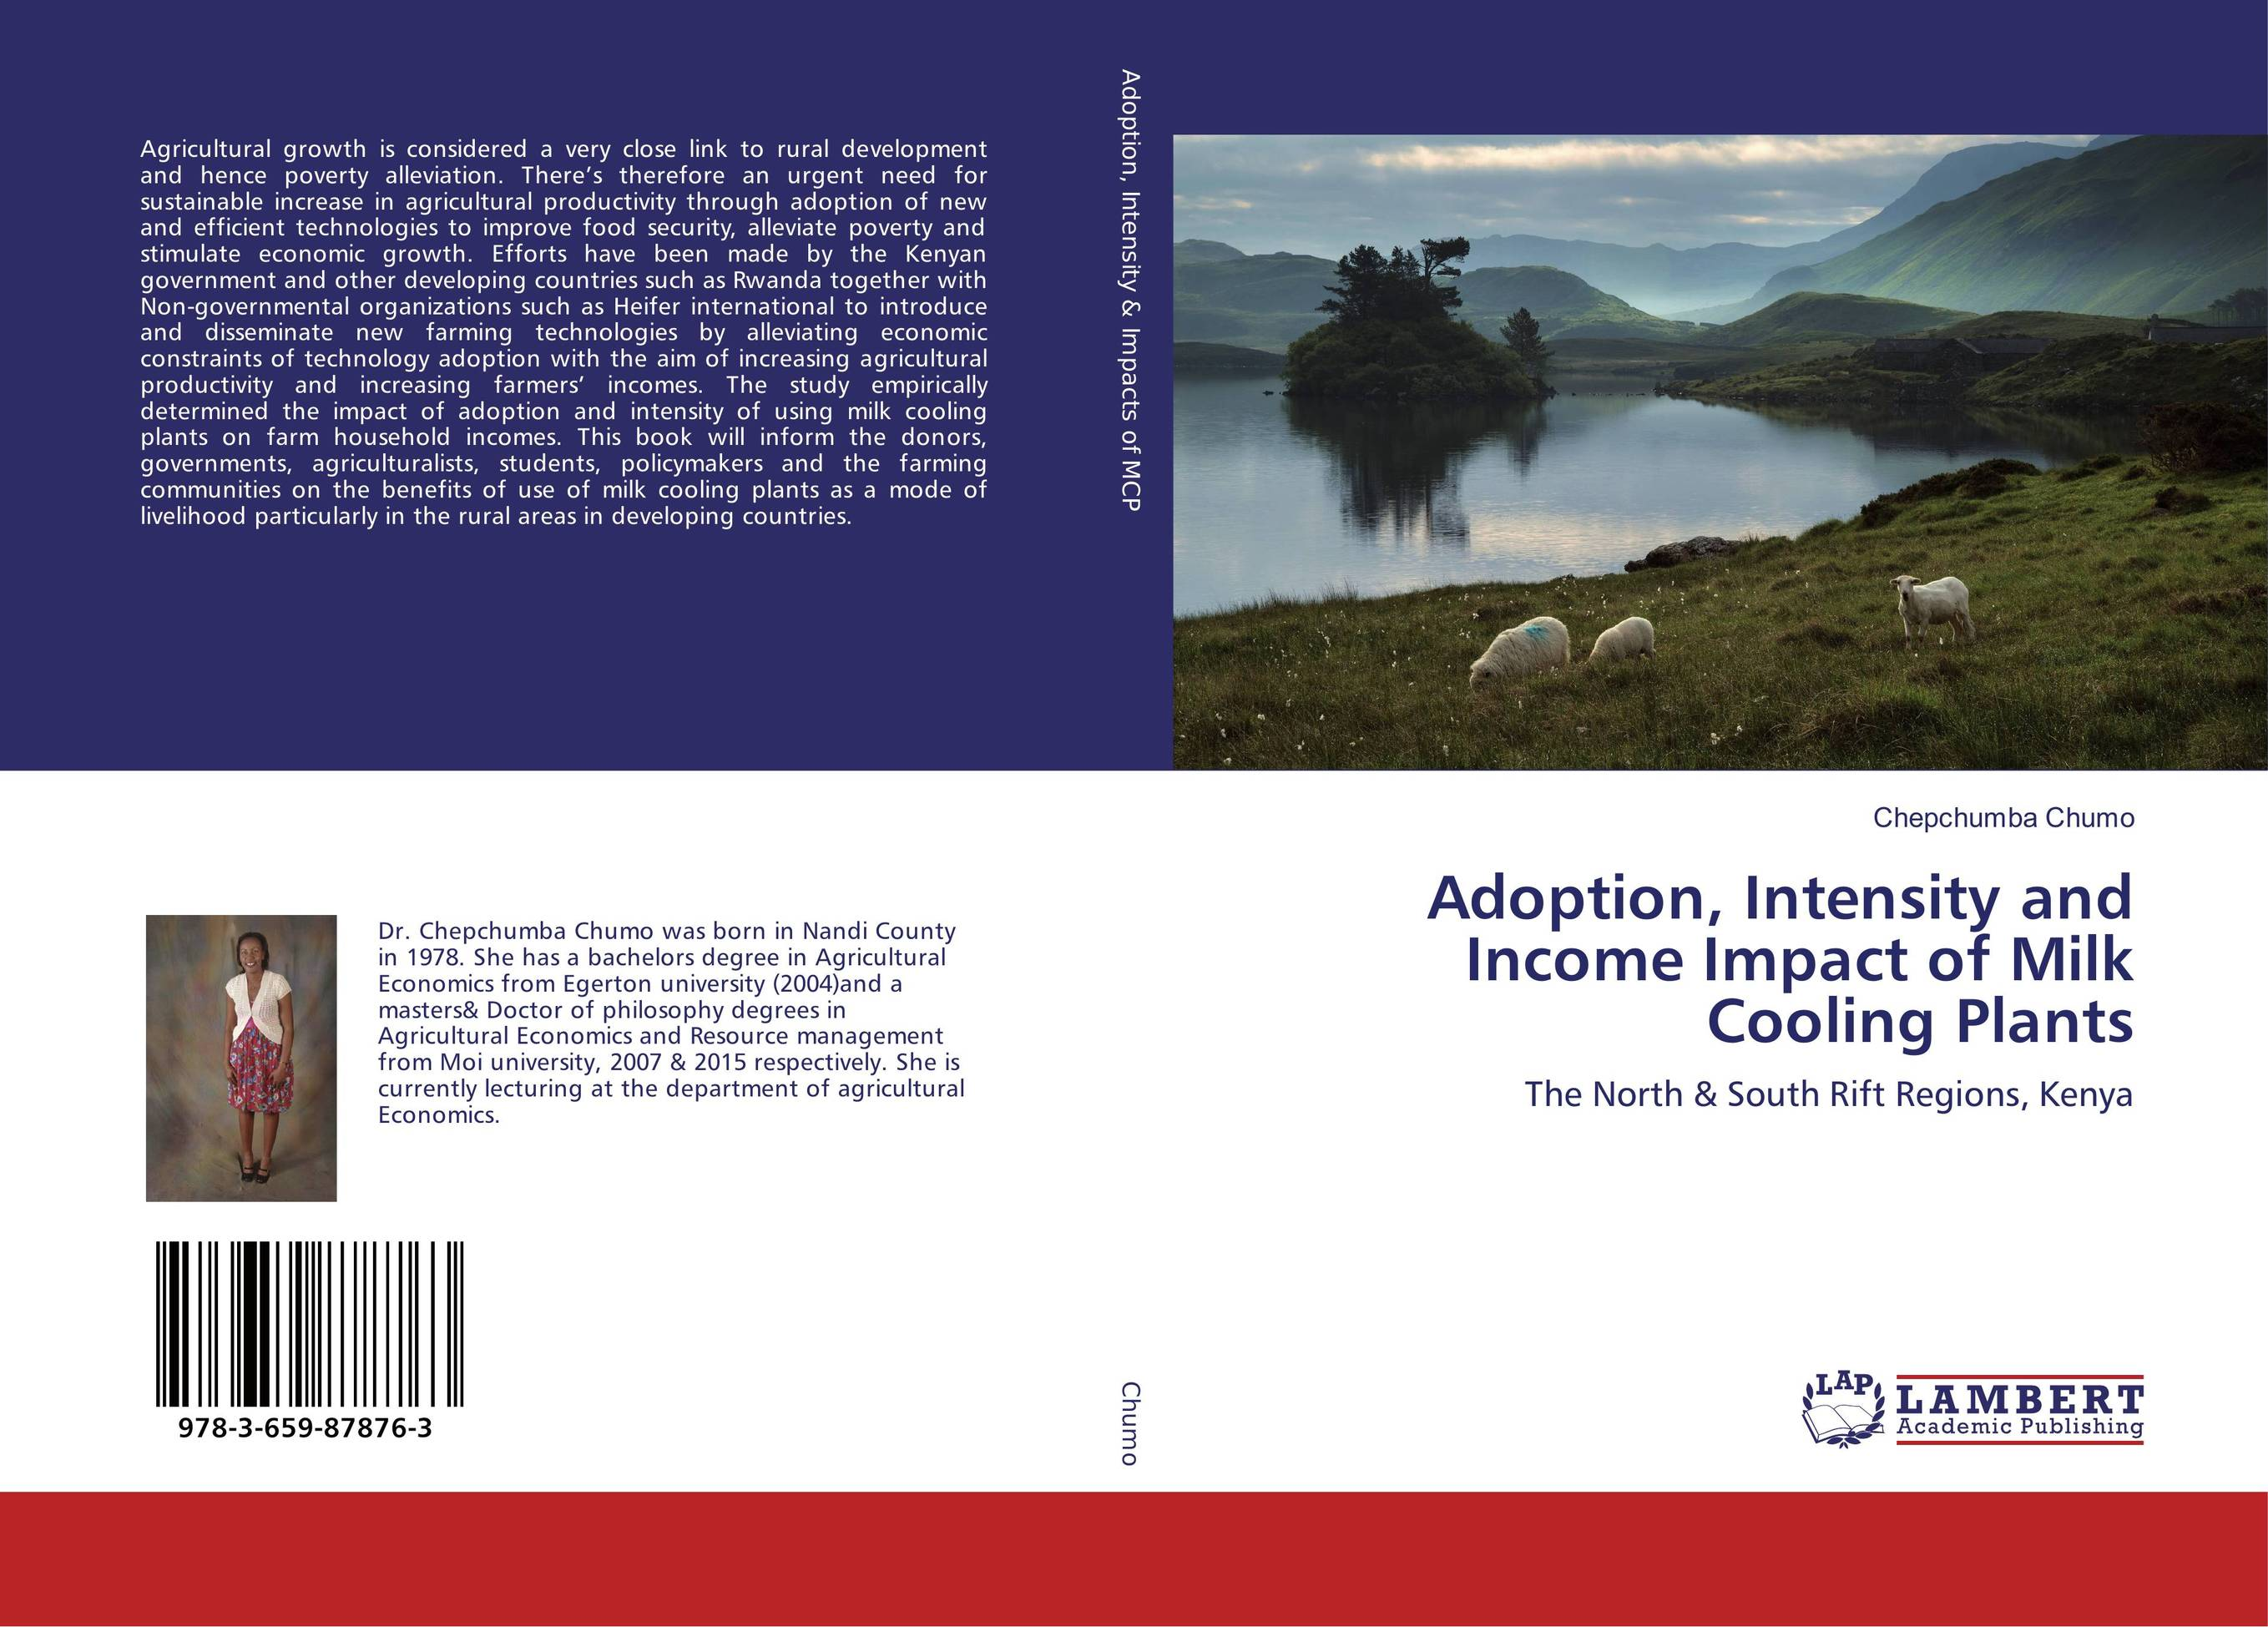 Adoption, Intensity and Income Impact of Milk Cooling Plants impact of land use consolidation on poverty reduction in rwanda